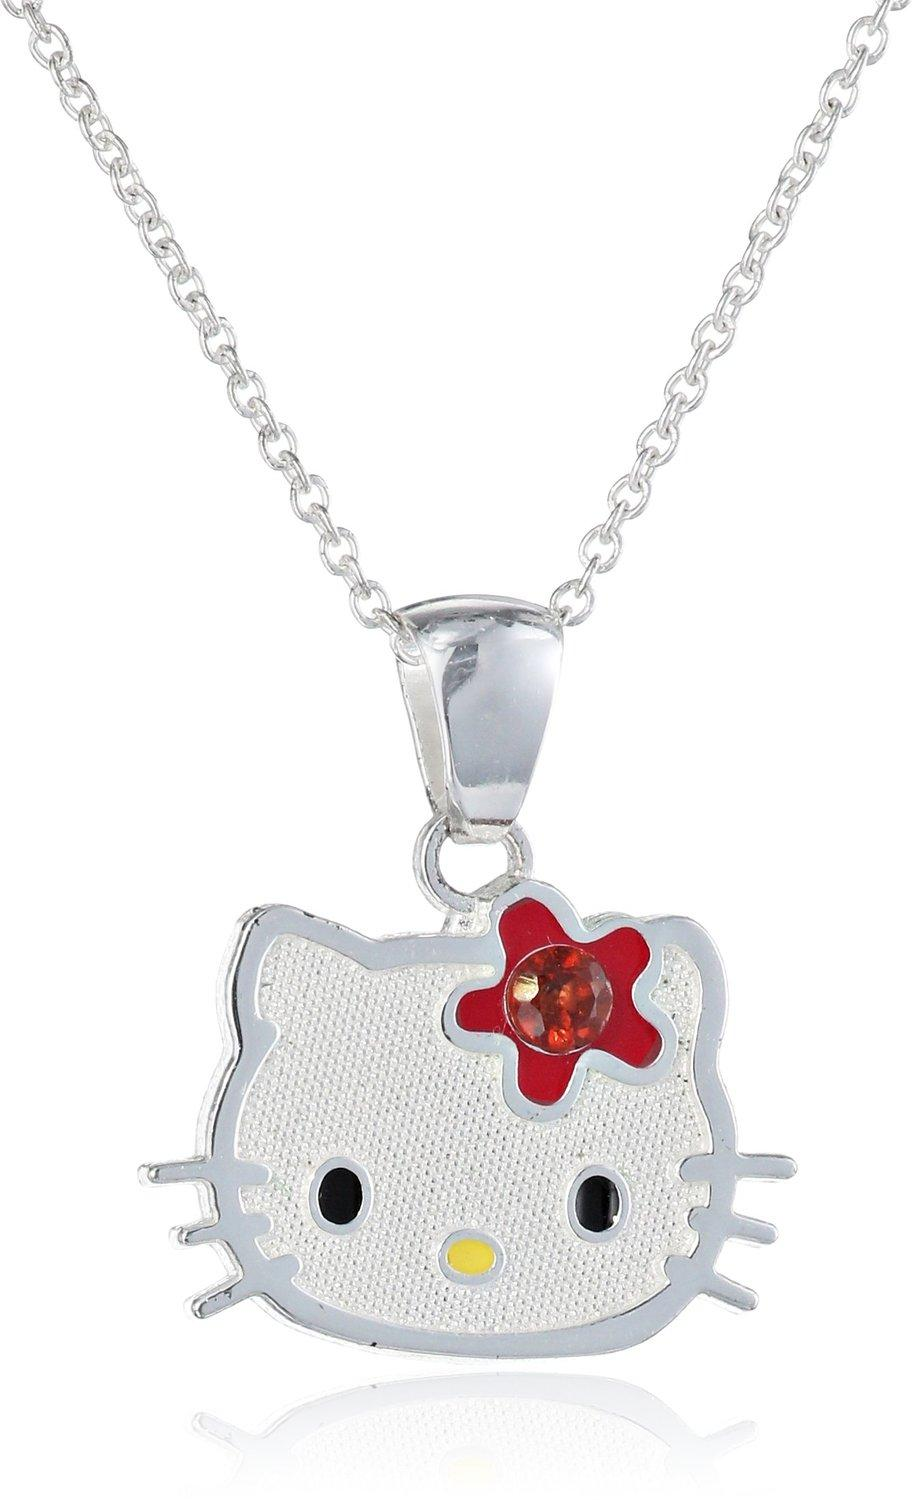 Extra 50% off Already Reduced Hello Kitty Jewelry @ Amazon.com